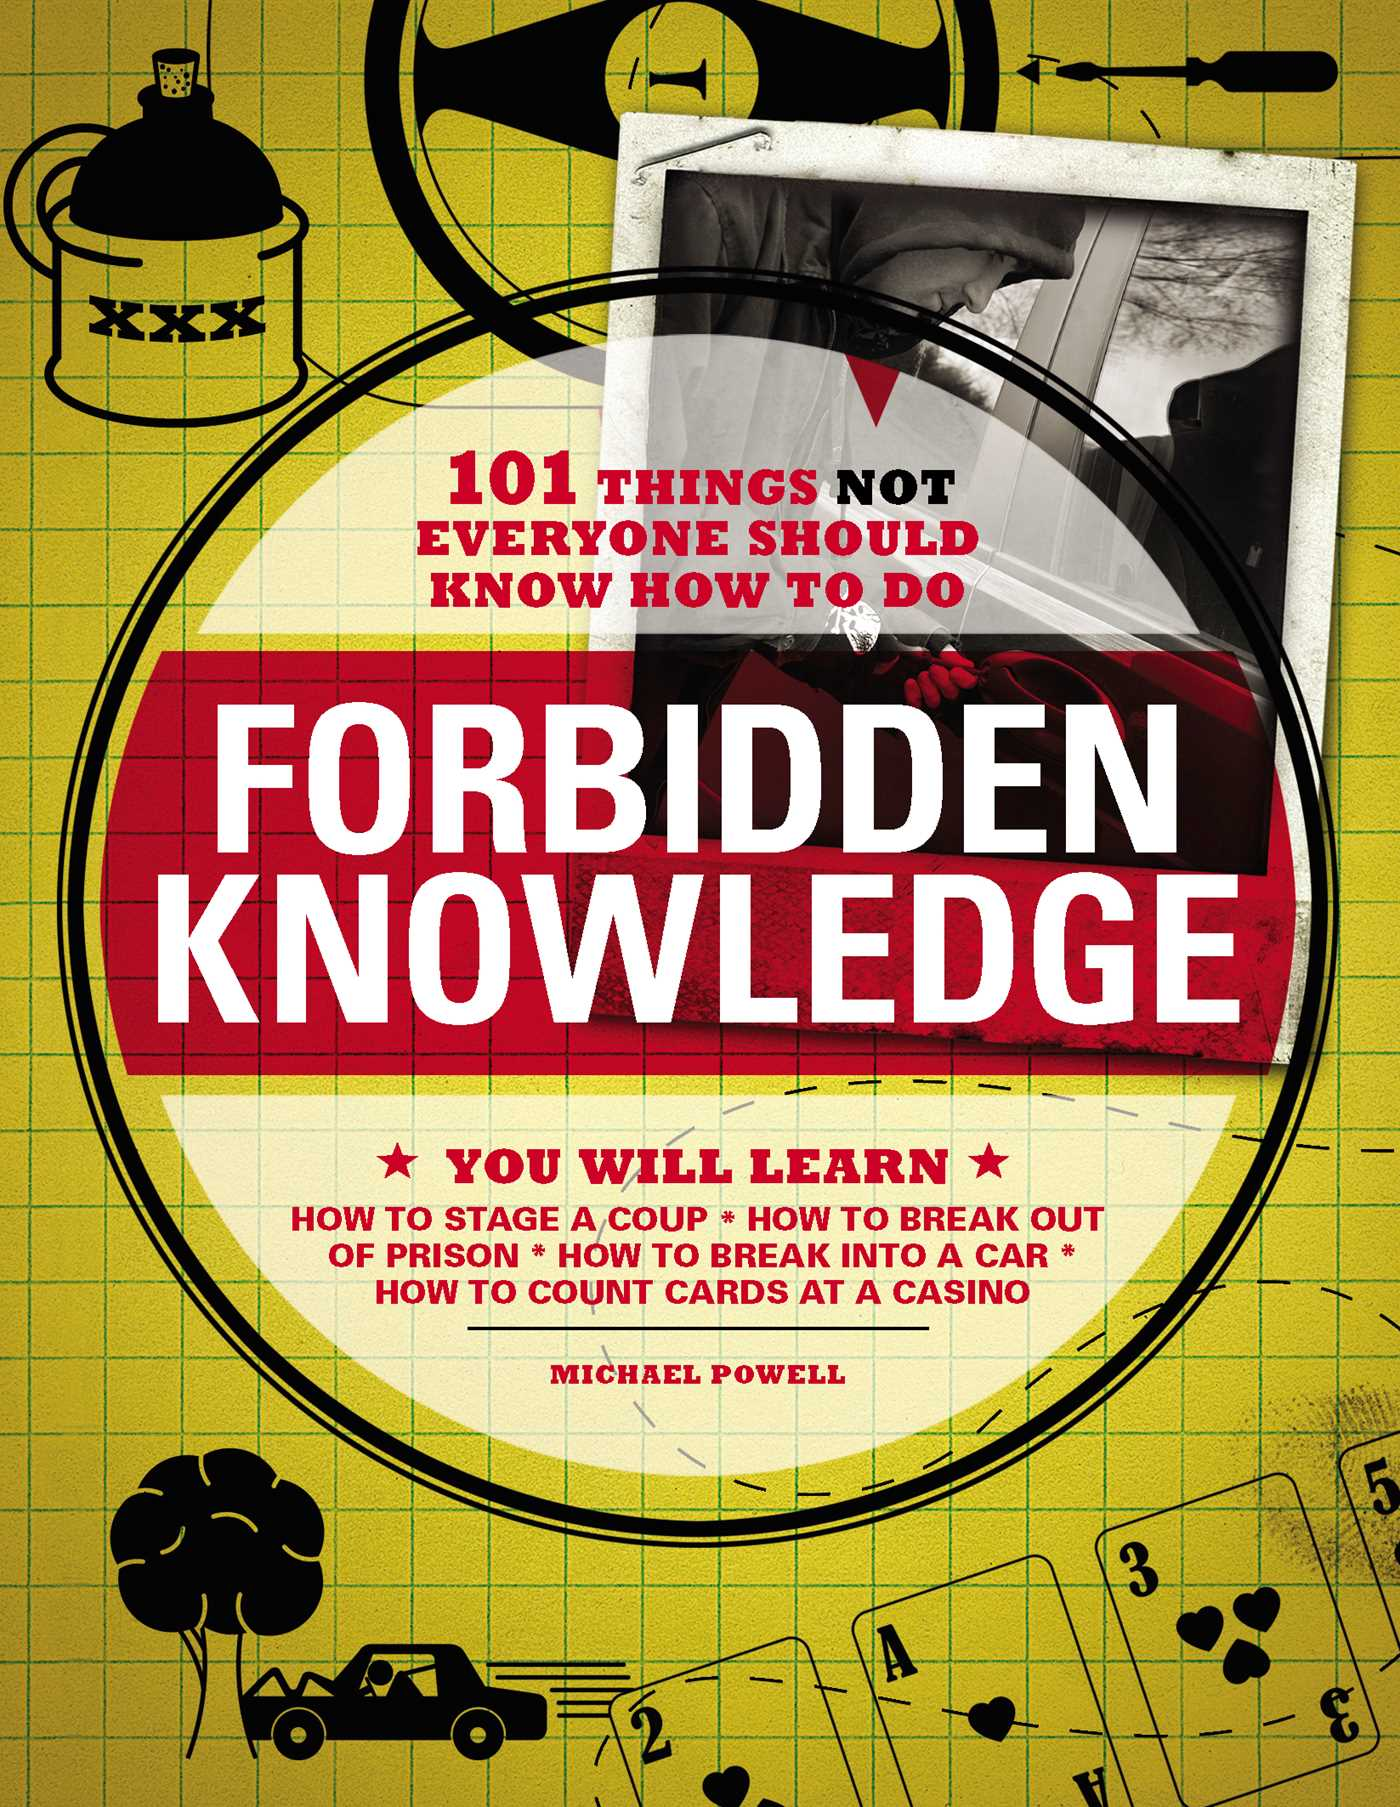 Forbidden Knowledge   Book by Michael Powell   Official